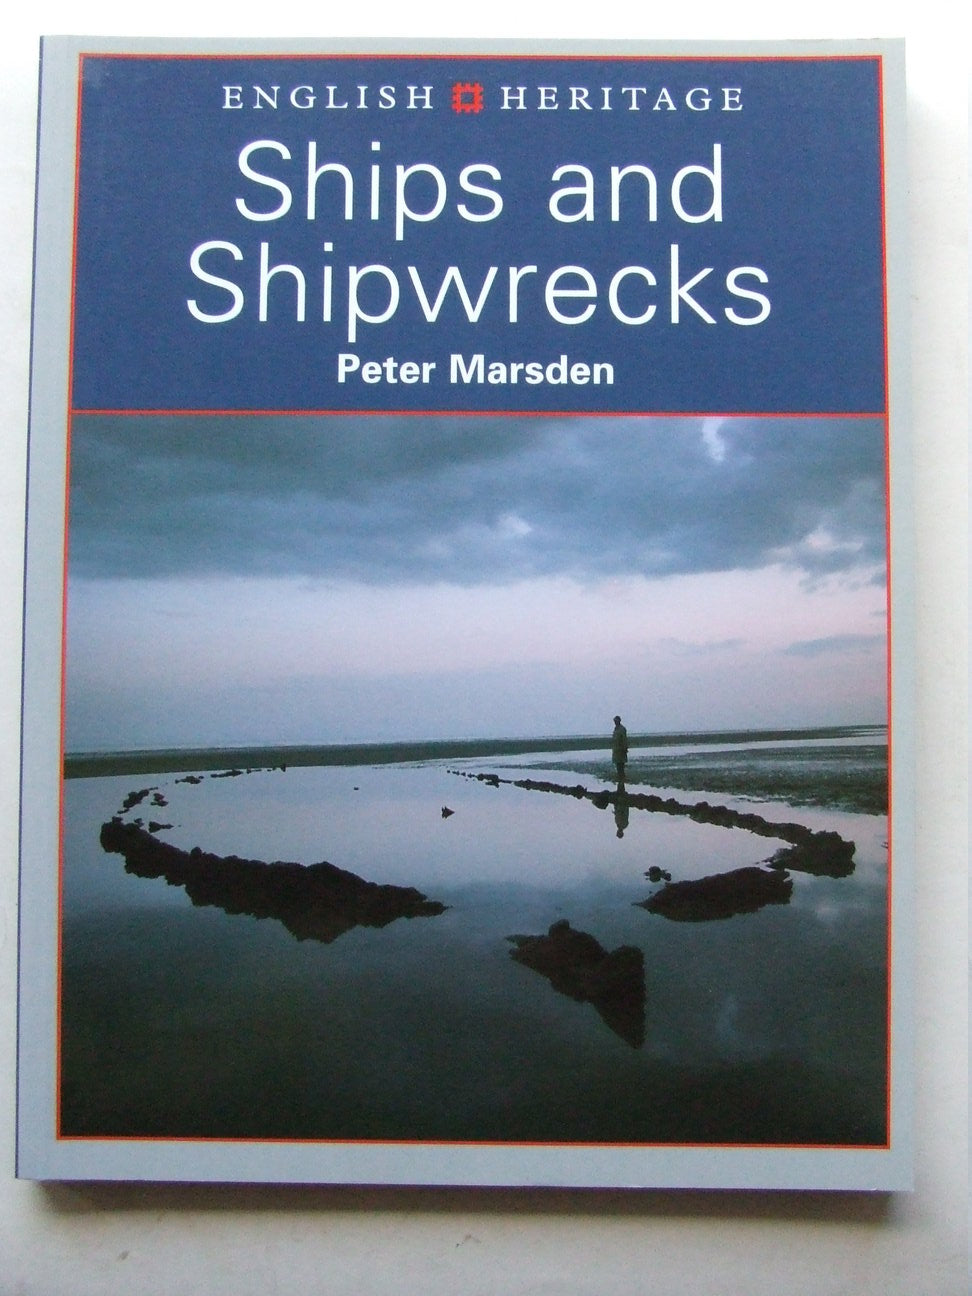 English Heritage Book of Ships and Shipwrecks